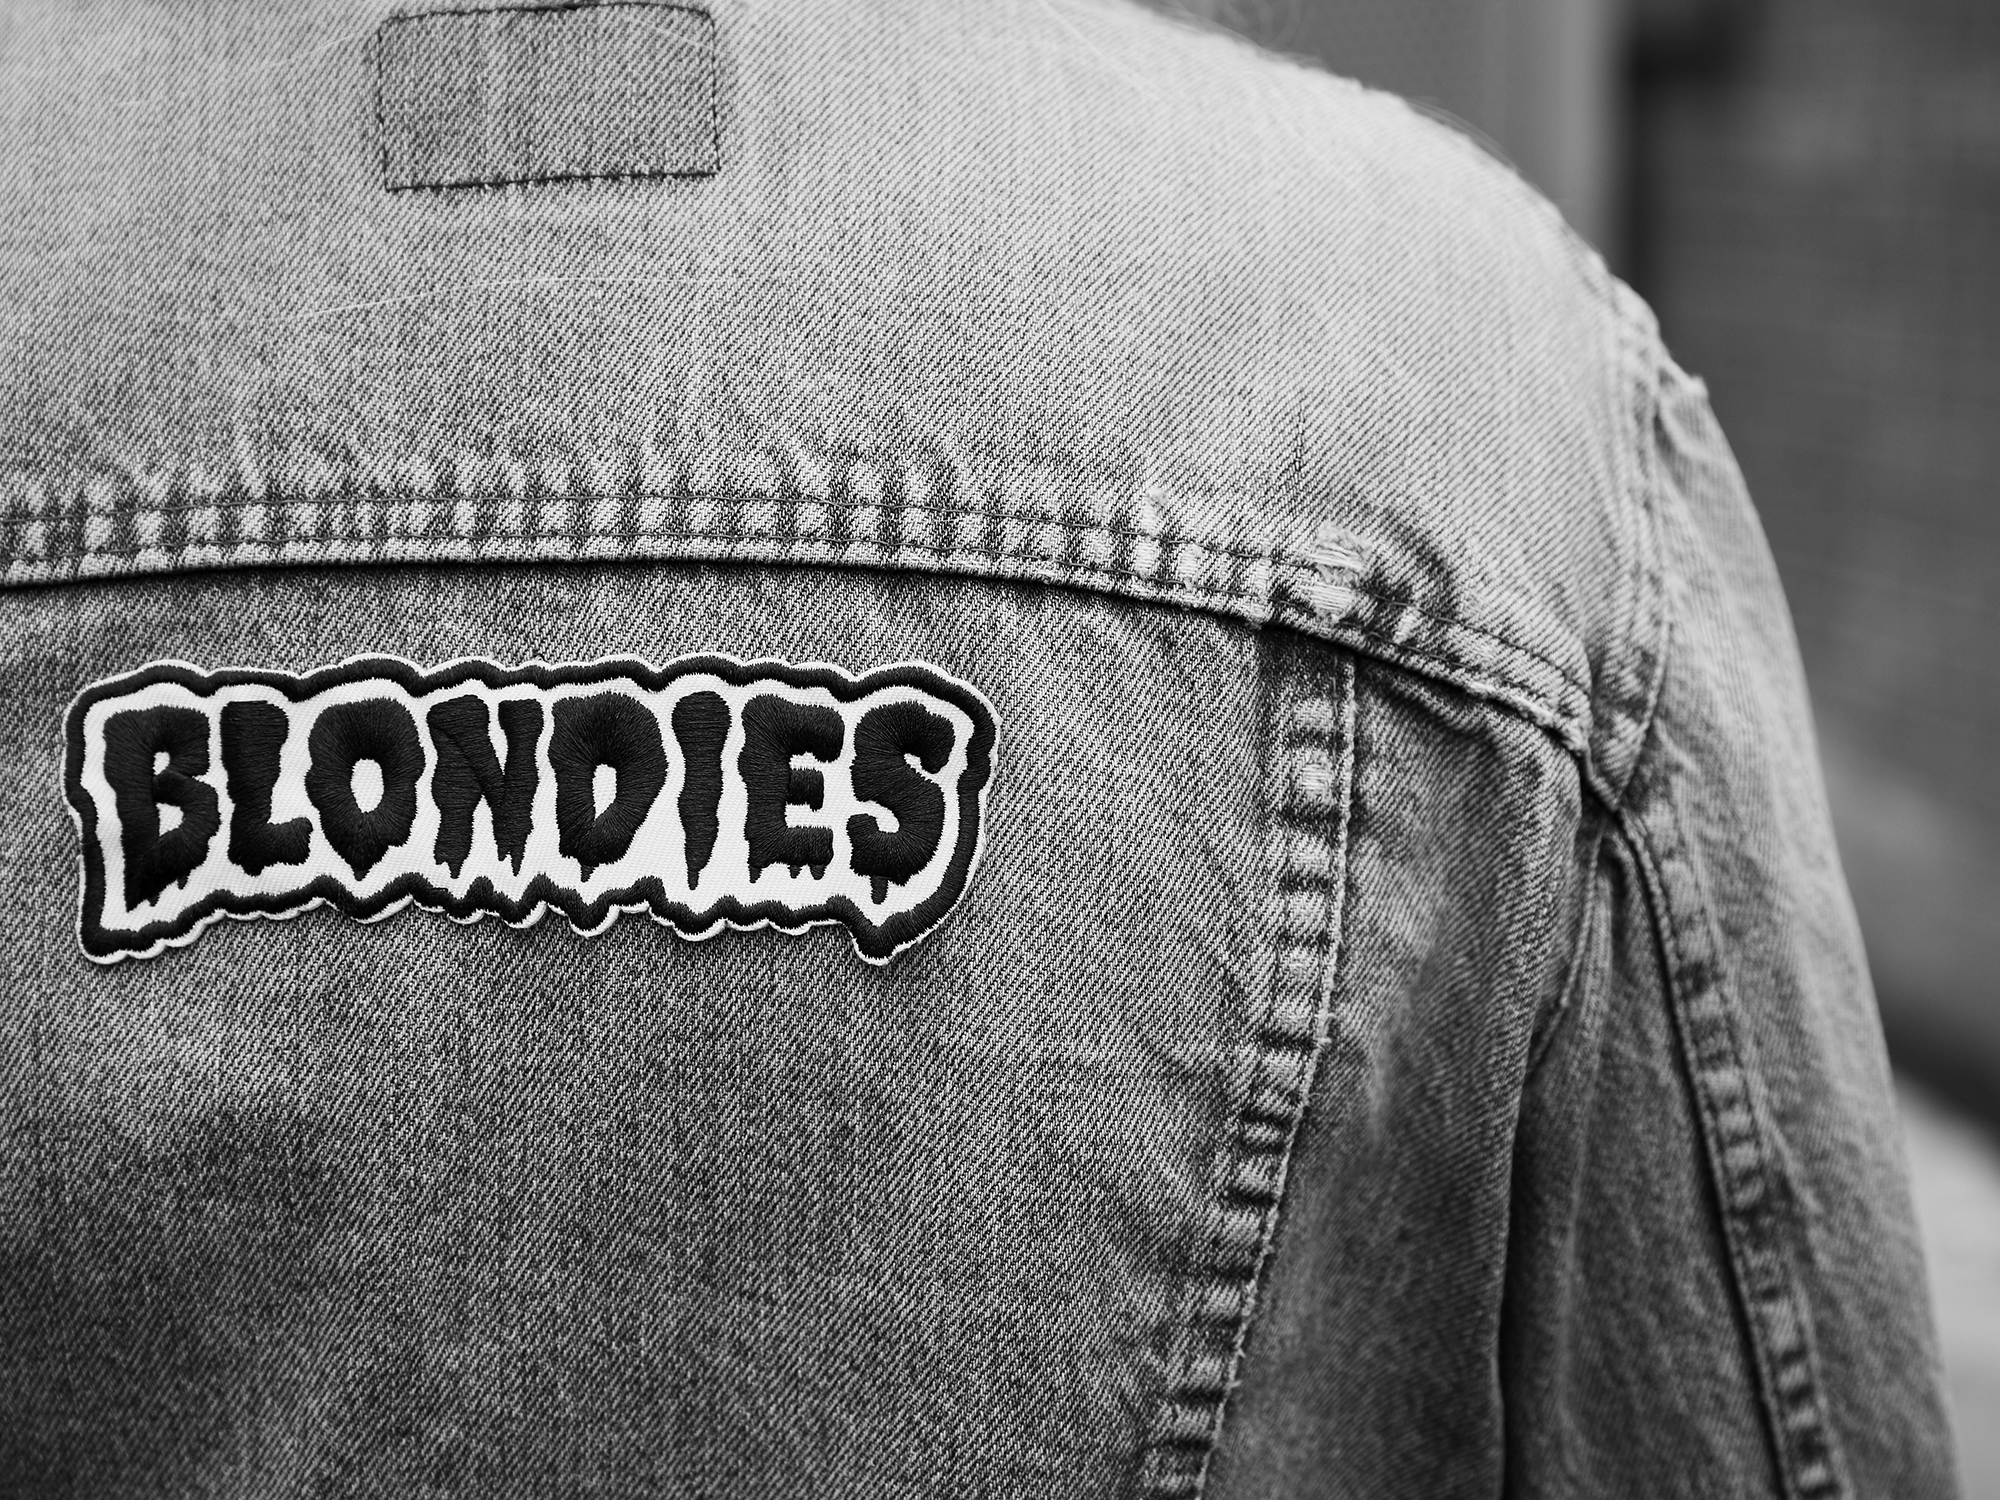 Blondies_Merch_132_BW.jpg